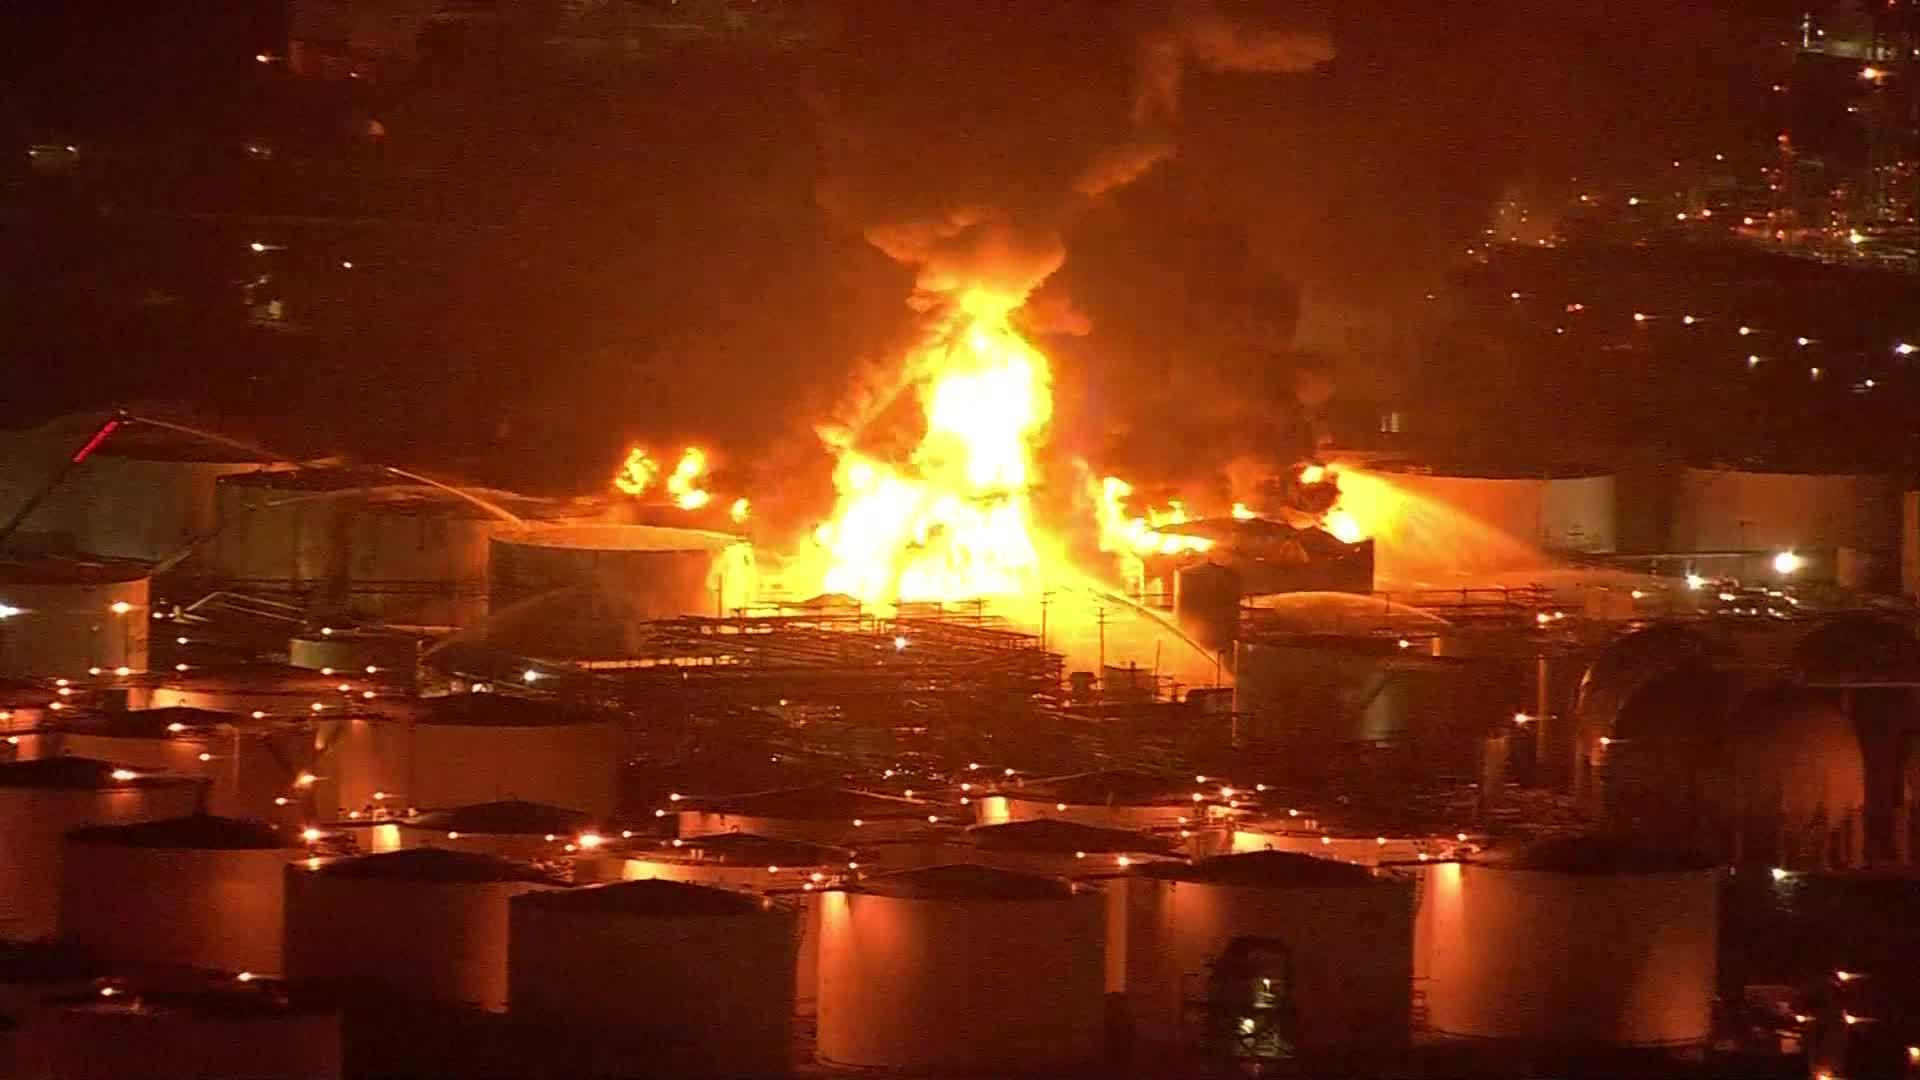 Video__Texas_chemical_plant_fire_continu_0_20190319121157